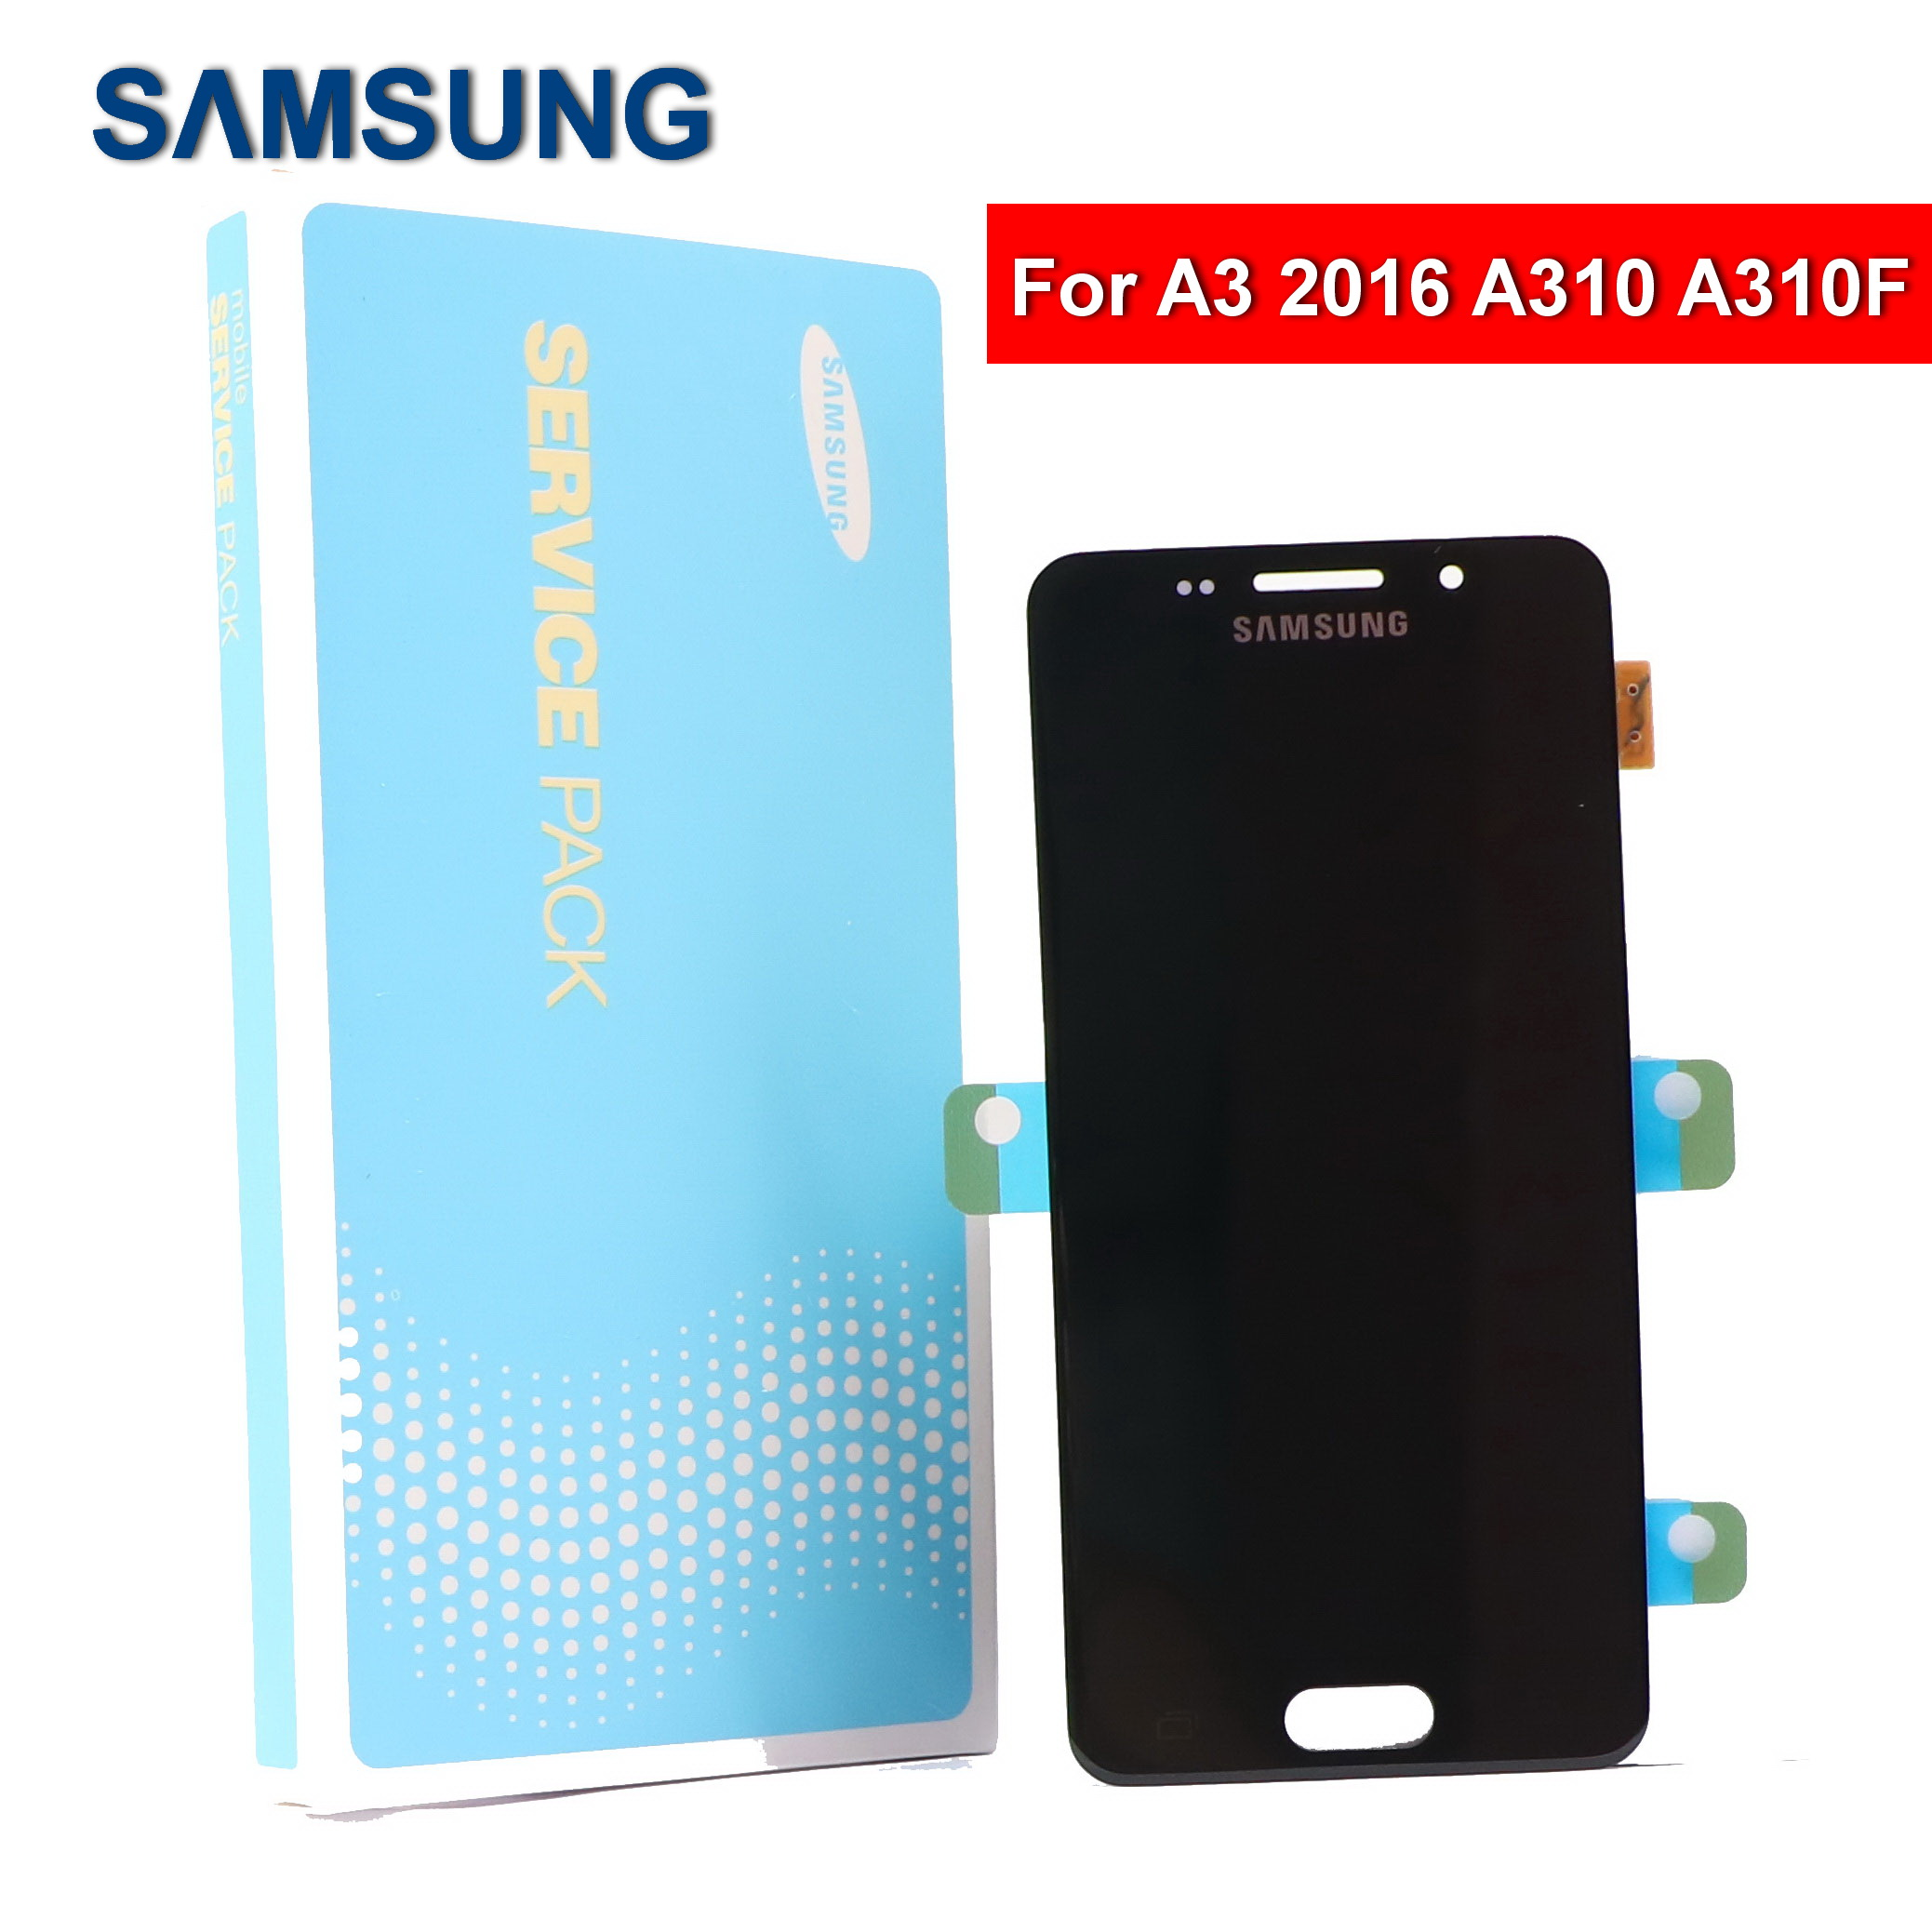 <font><b>ORIGINAL</b></font> Super AMOLED A3 <font><b>LCD</b></font> screen Für <font><b>Samsung</b></font> <font><b>GALAXY</b></font> <font><b>A310</b></font> 2016 <font><b>A310</b></font> A310F A3100 telefon display touchscreen digitizer image